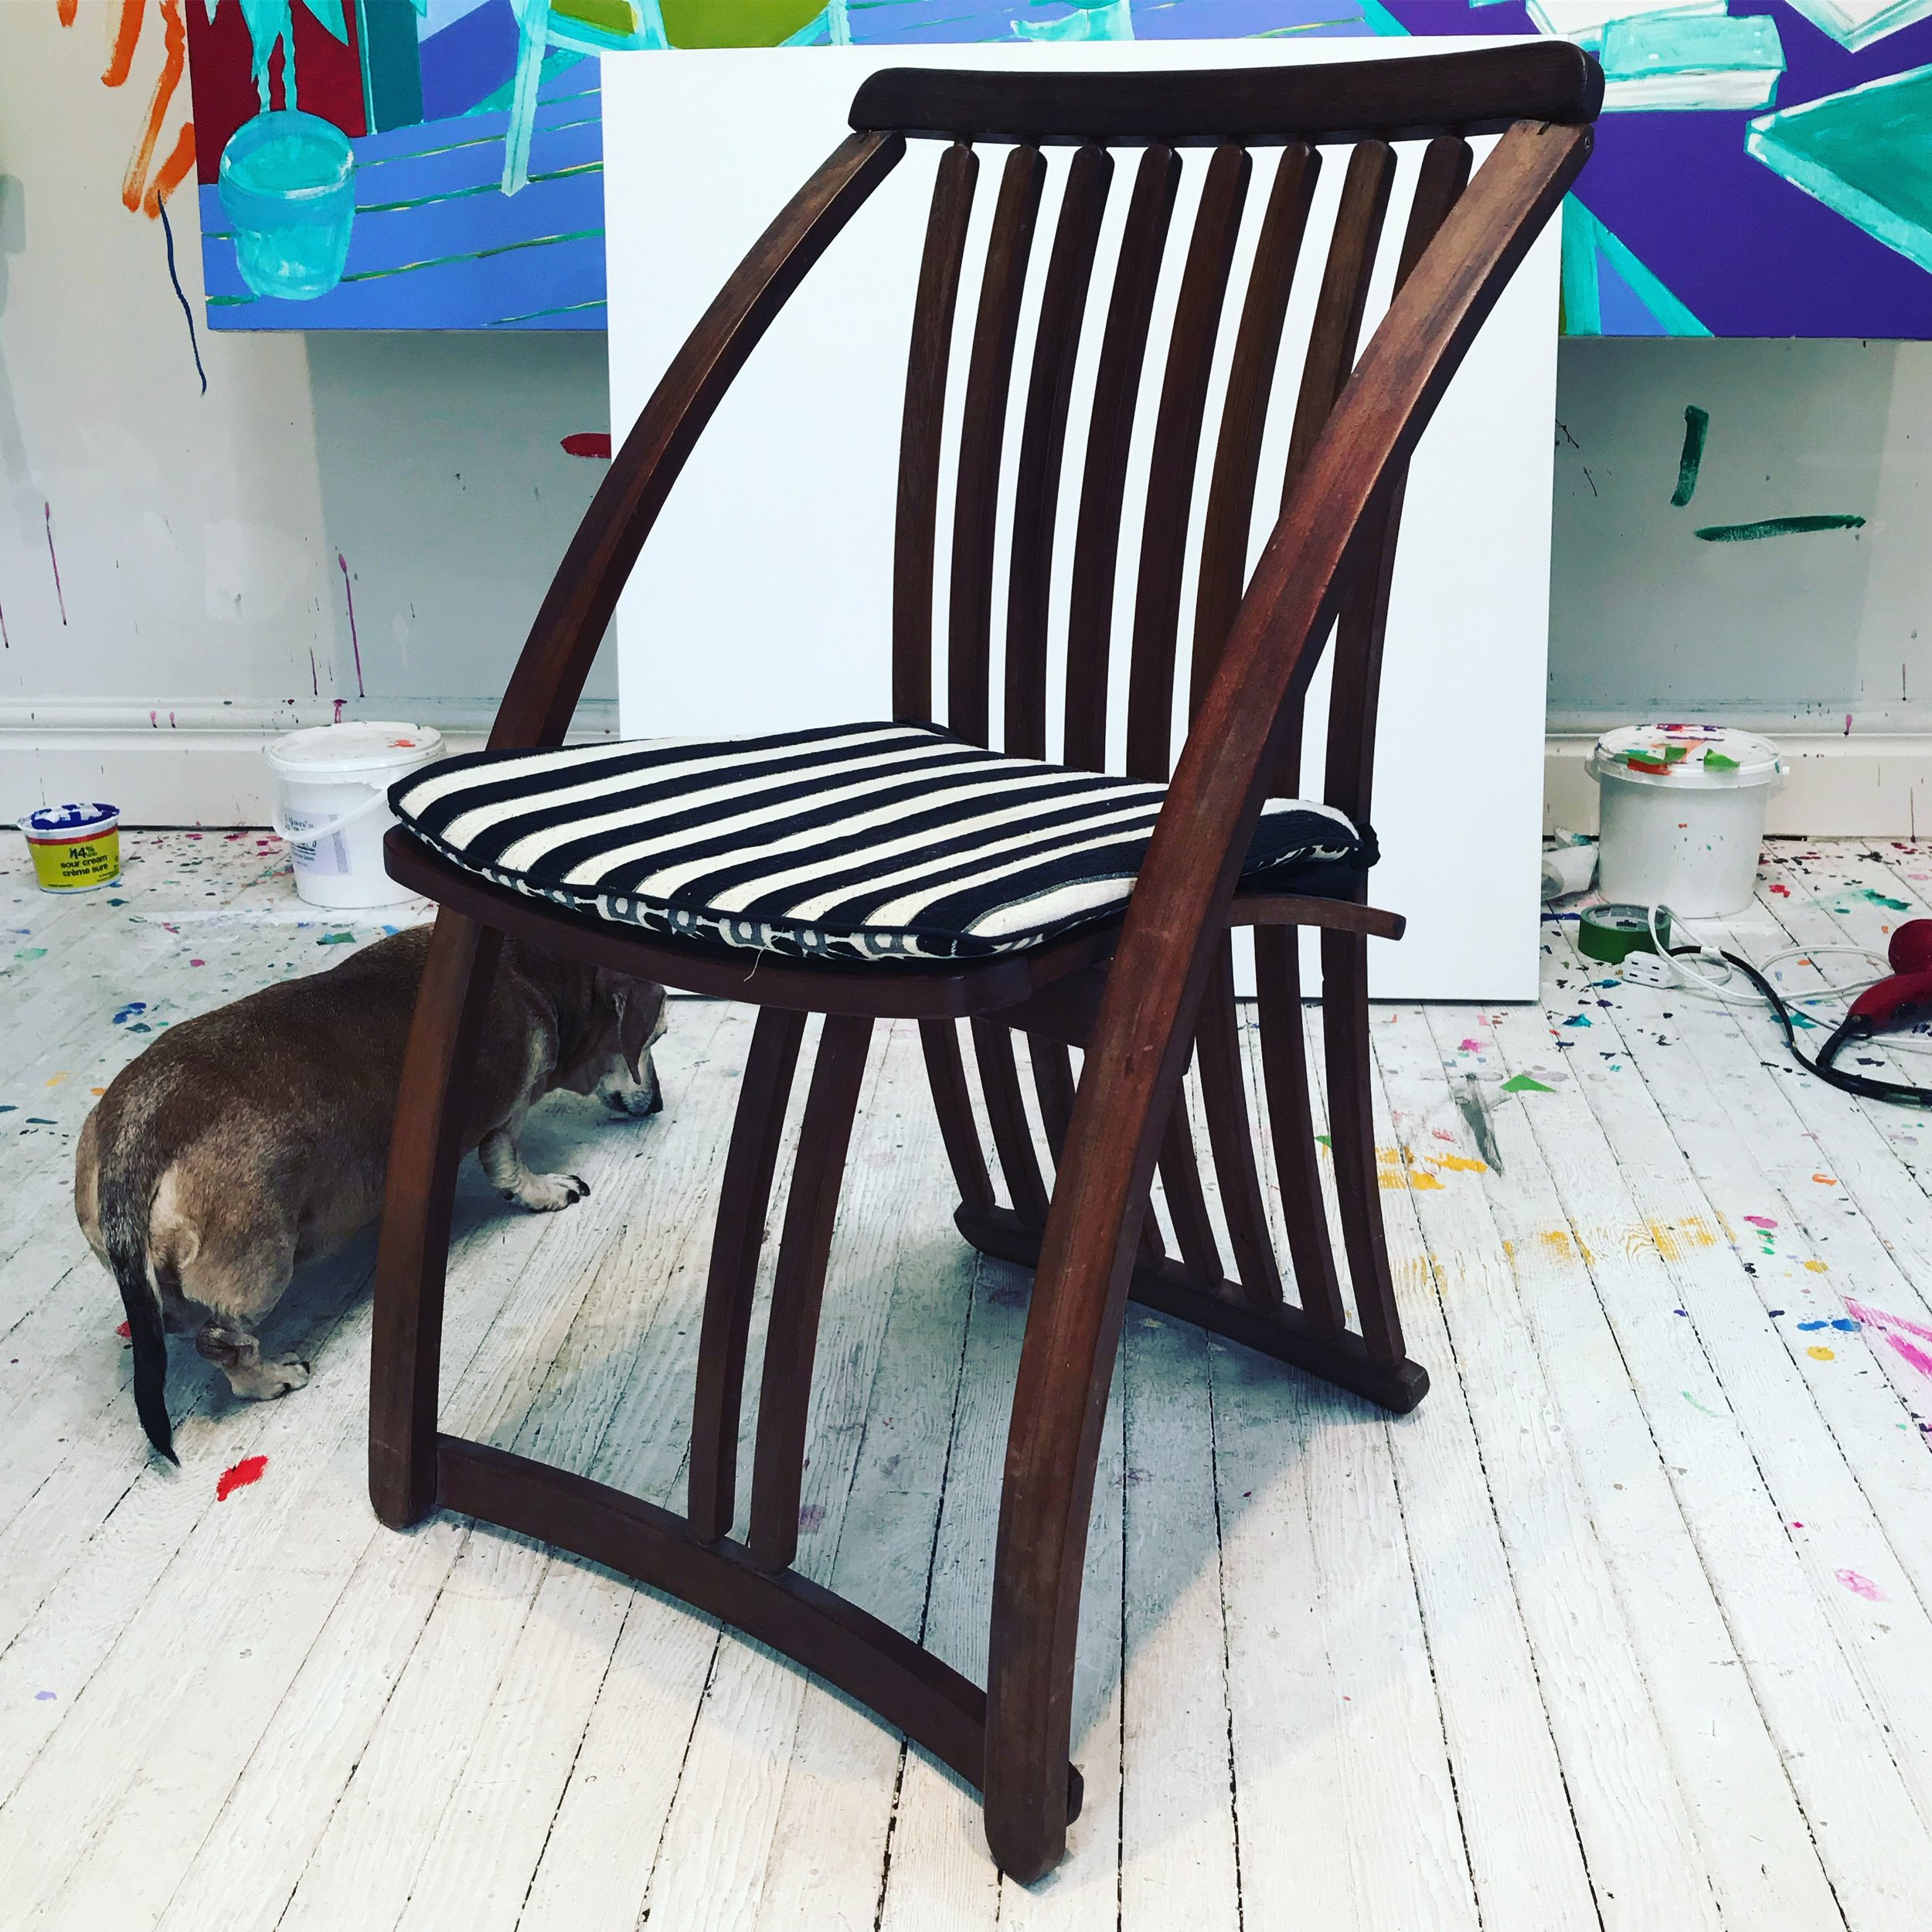 See the process! This is the chair Andrew based the painting on in his Wortley Village studio (with special guest Miss Winnie)!